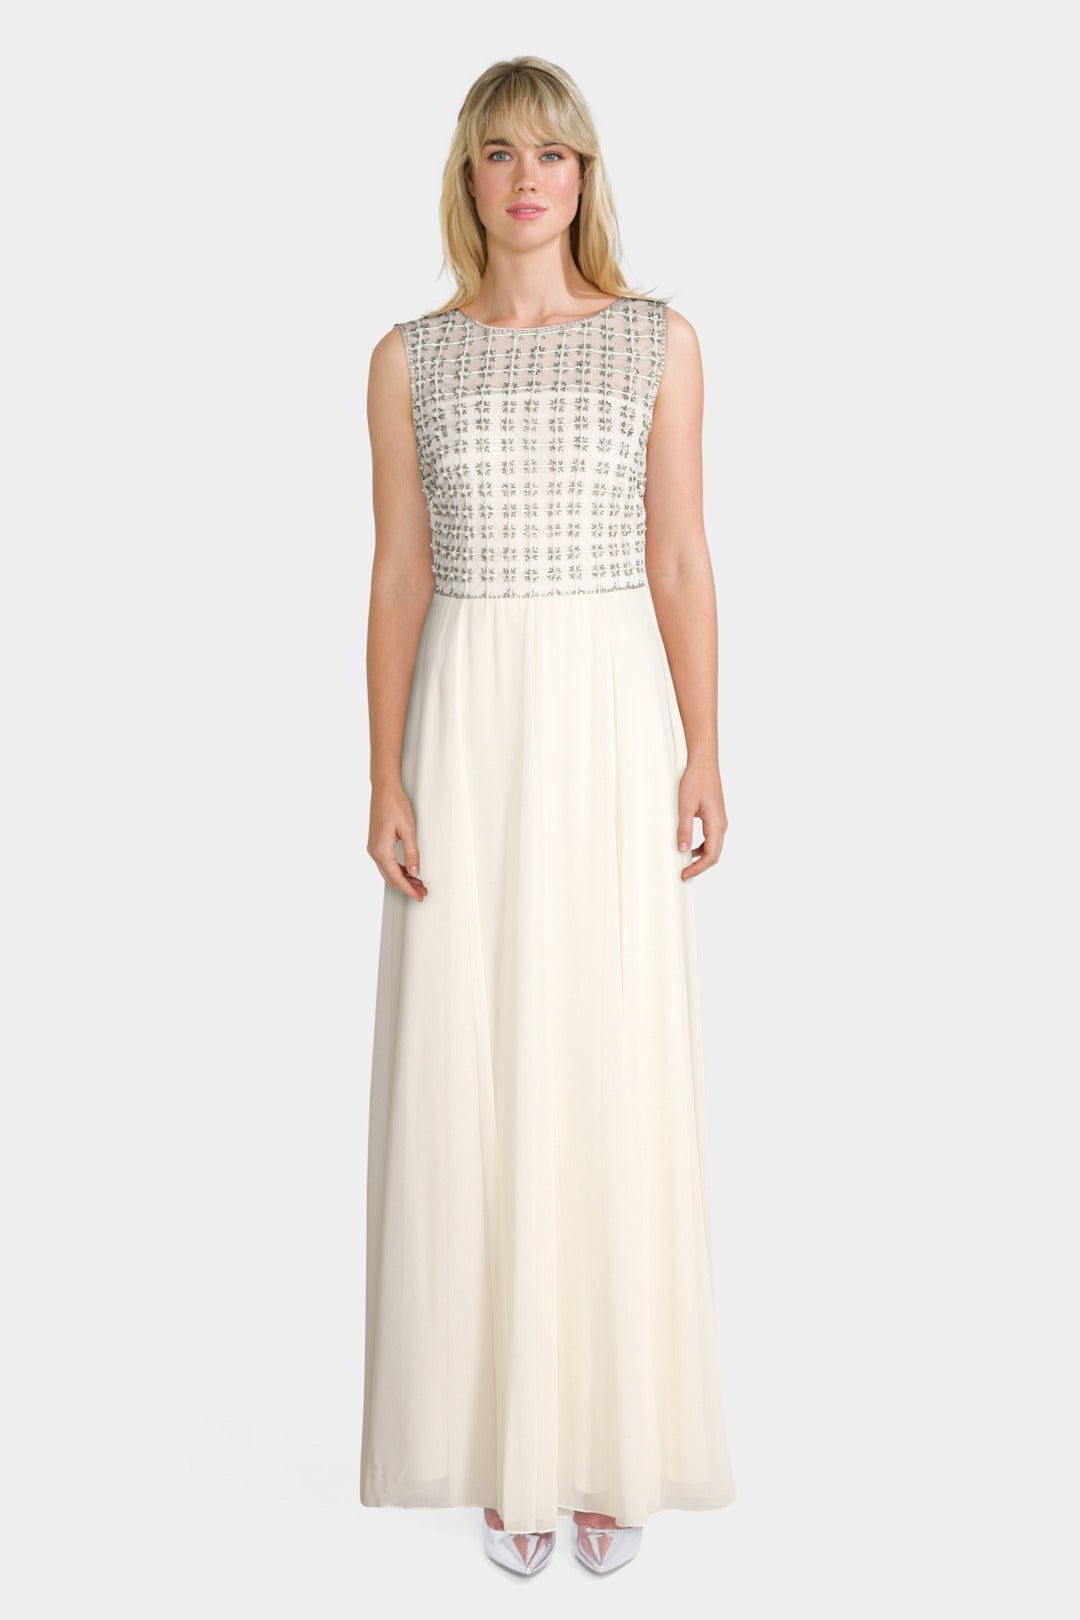 Beaded Sleeveless Cream Dress